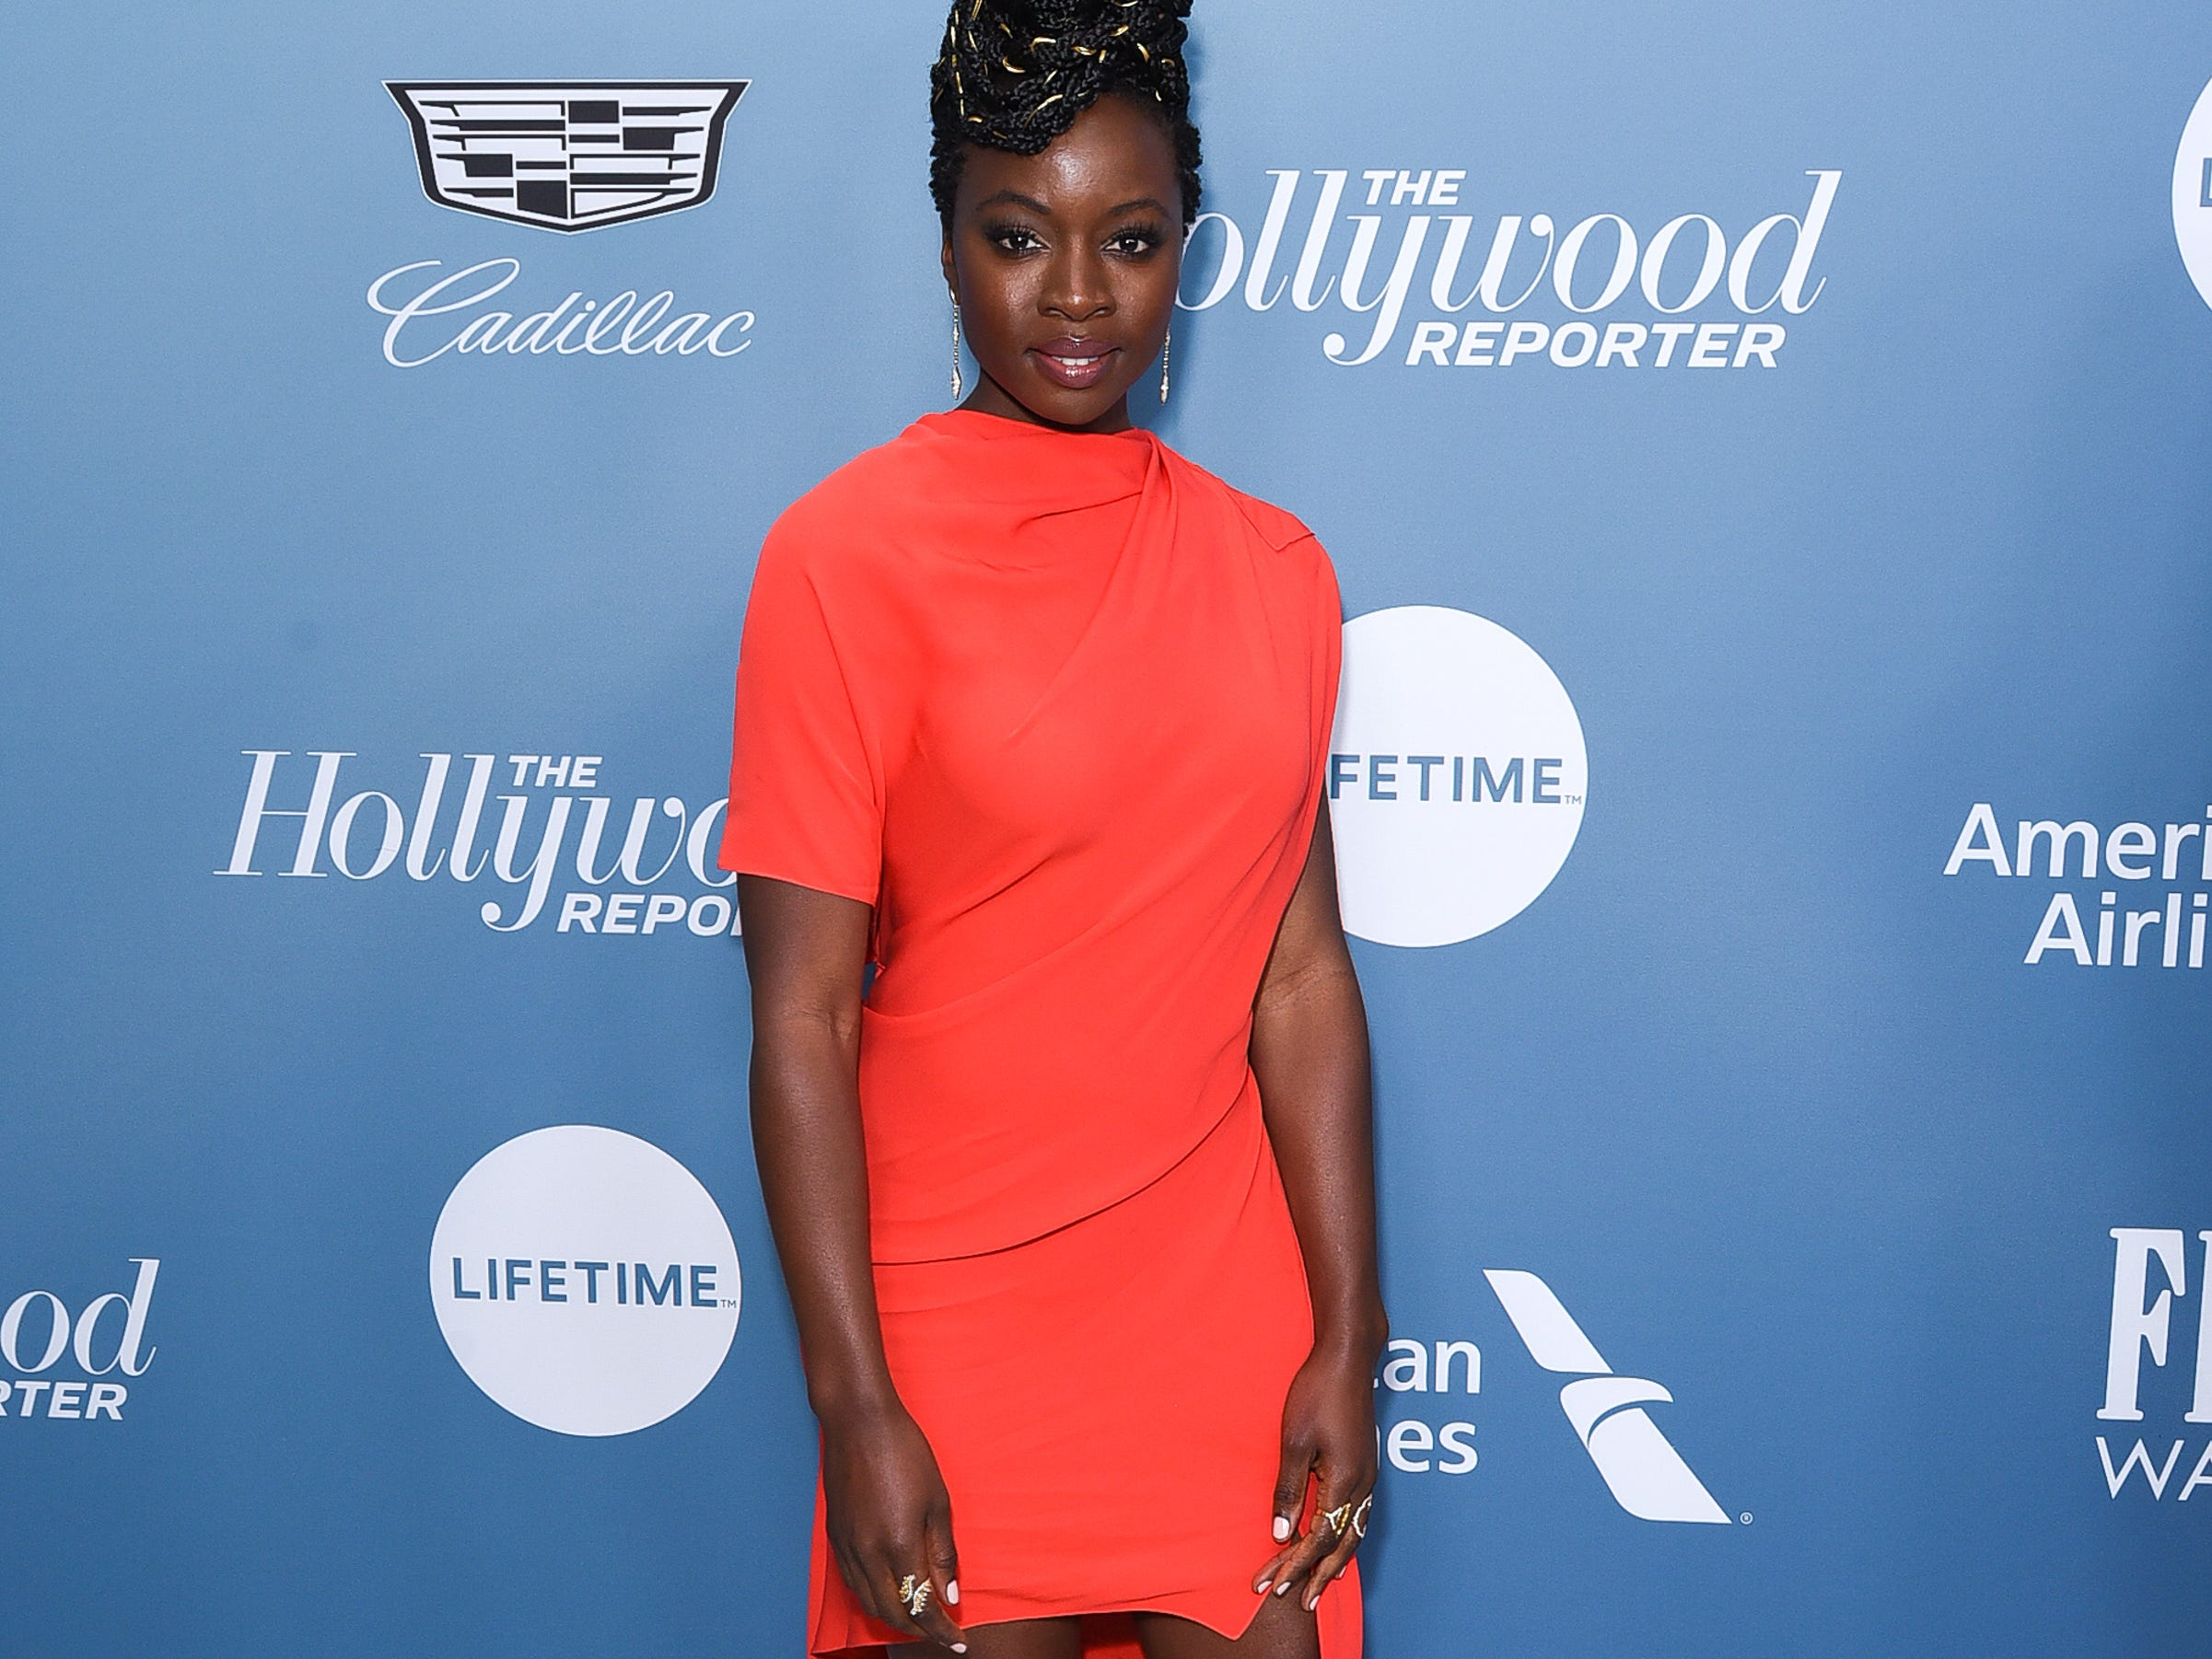 LOS ANGELES, CALIFORNIA - DECEMBER 05: Danai Gurira attends The Hollywood Reporter's Power 100 Women In Entertainment at Milk Studios on December 05, 2018 in Los Angeles, California. (Photo by Presley Ann/Getty Images) ORG XMIT: 775264723 ORIG FILE ID: 1077814050